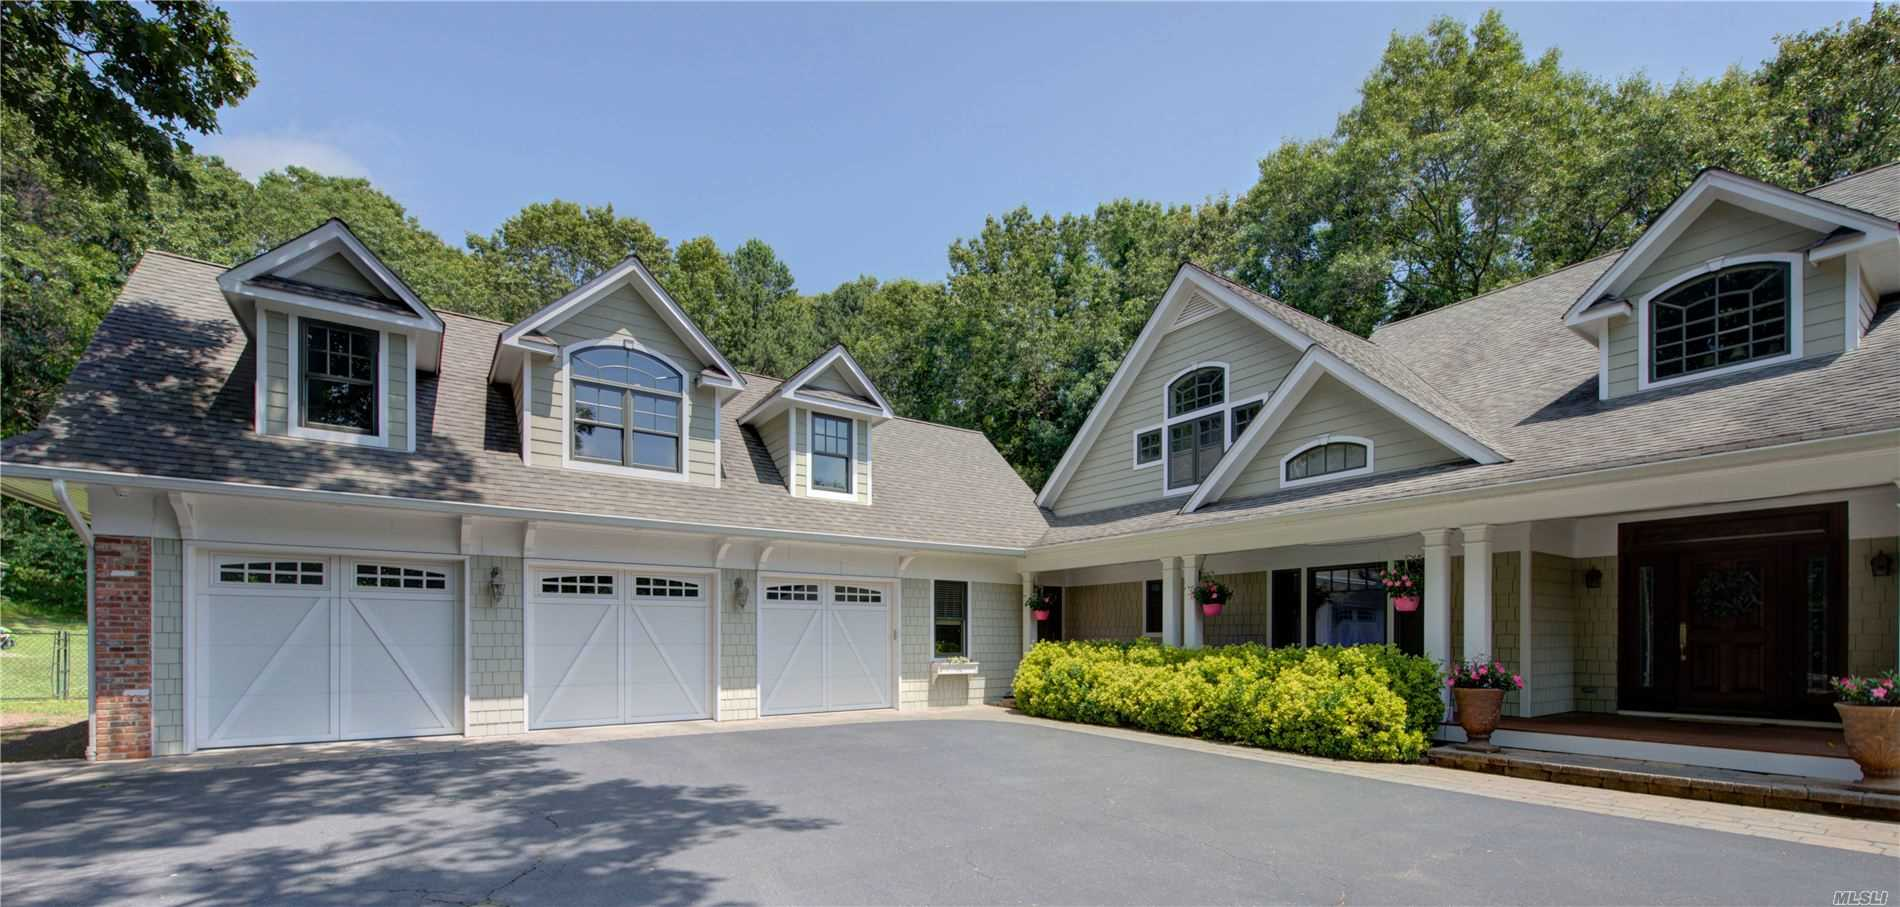 Photo of home for sale at 49 Grandview Ln, Smithtown NY